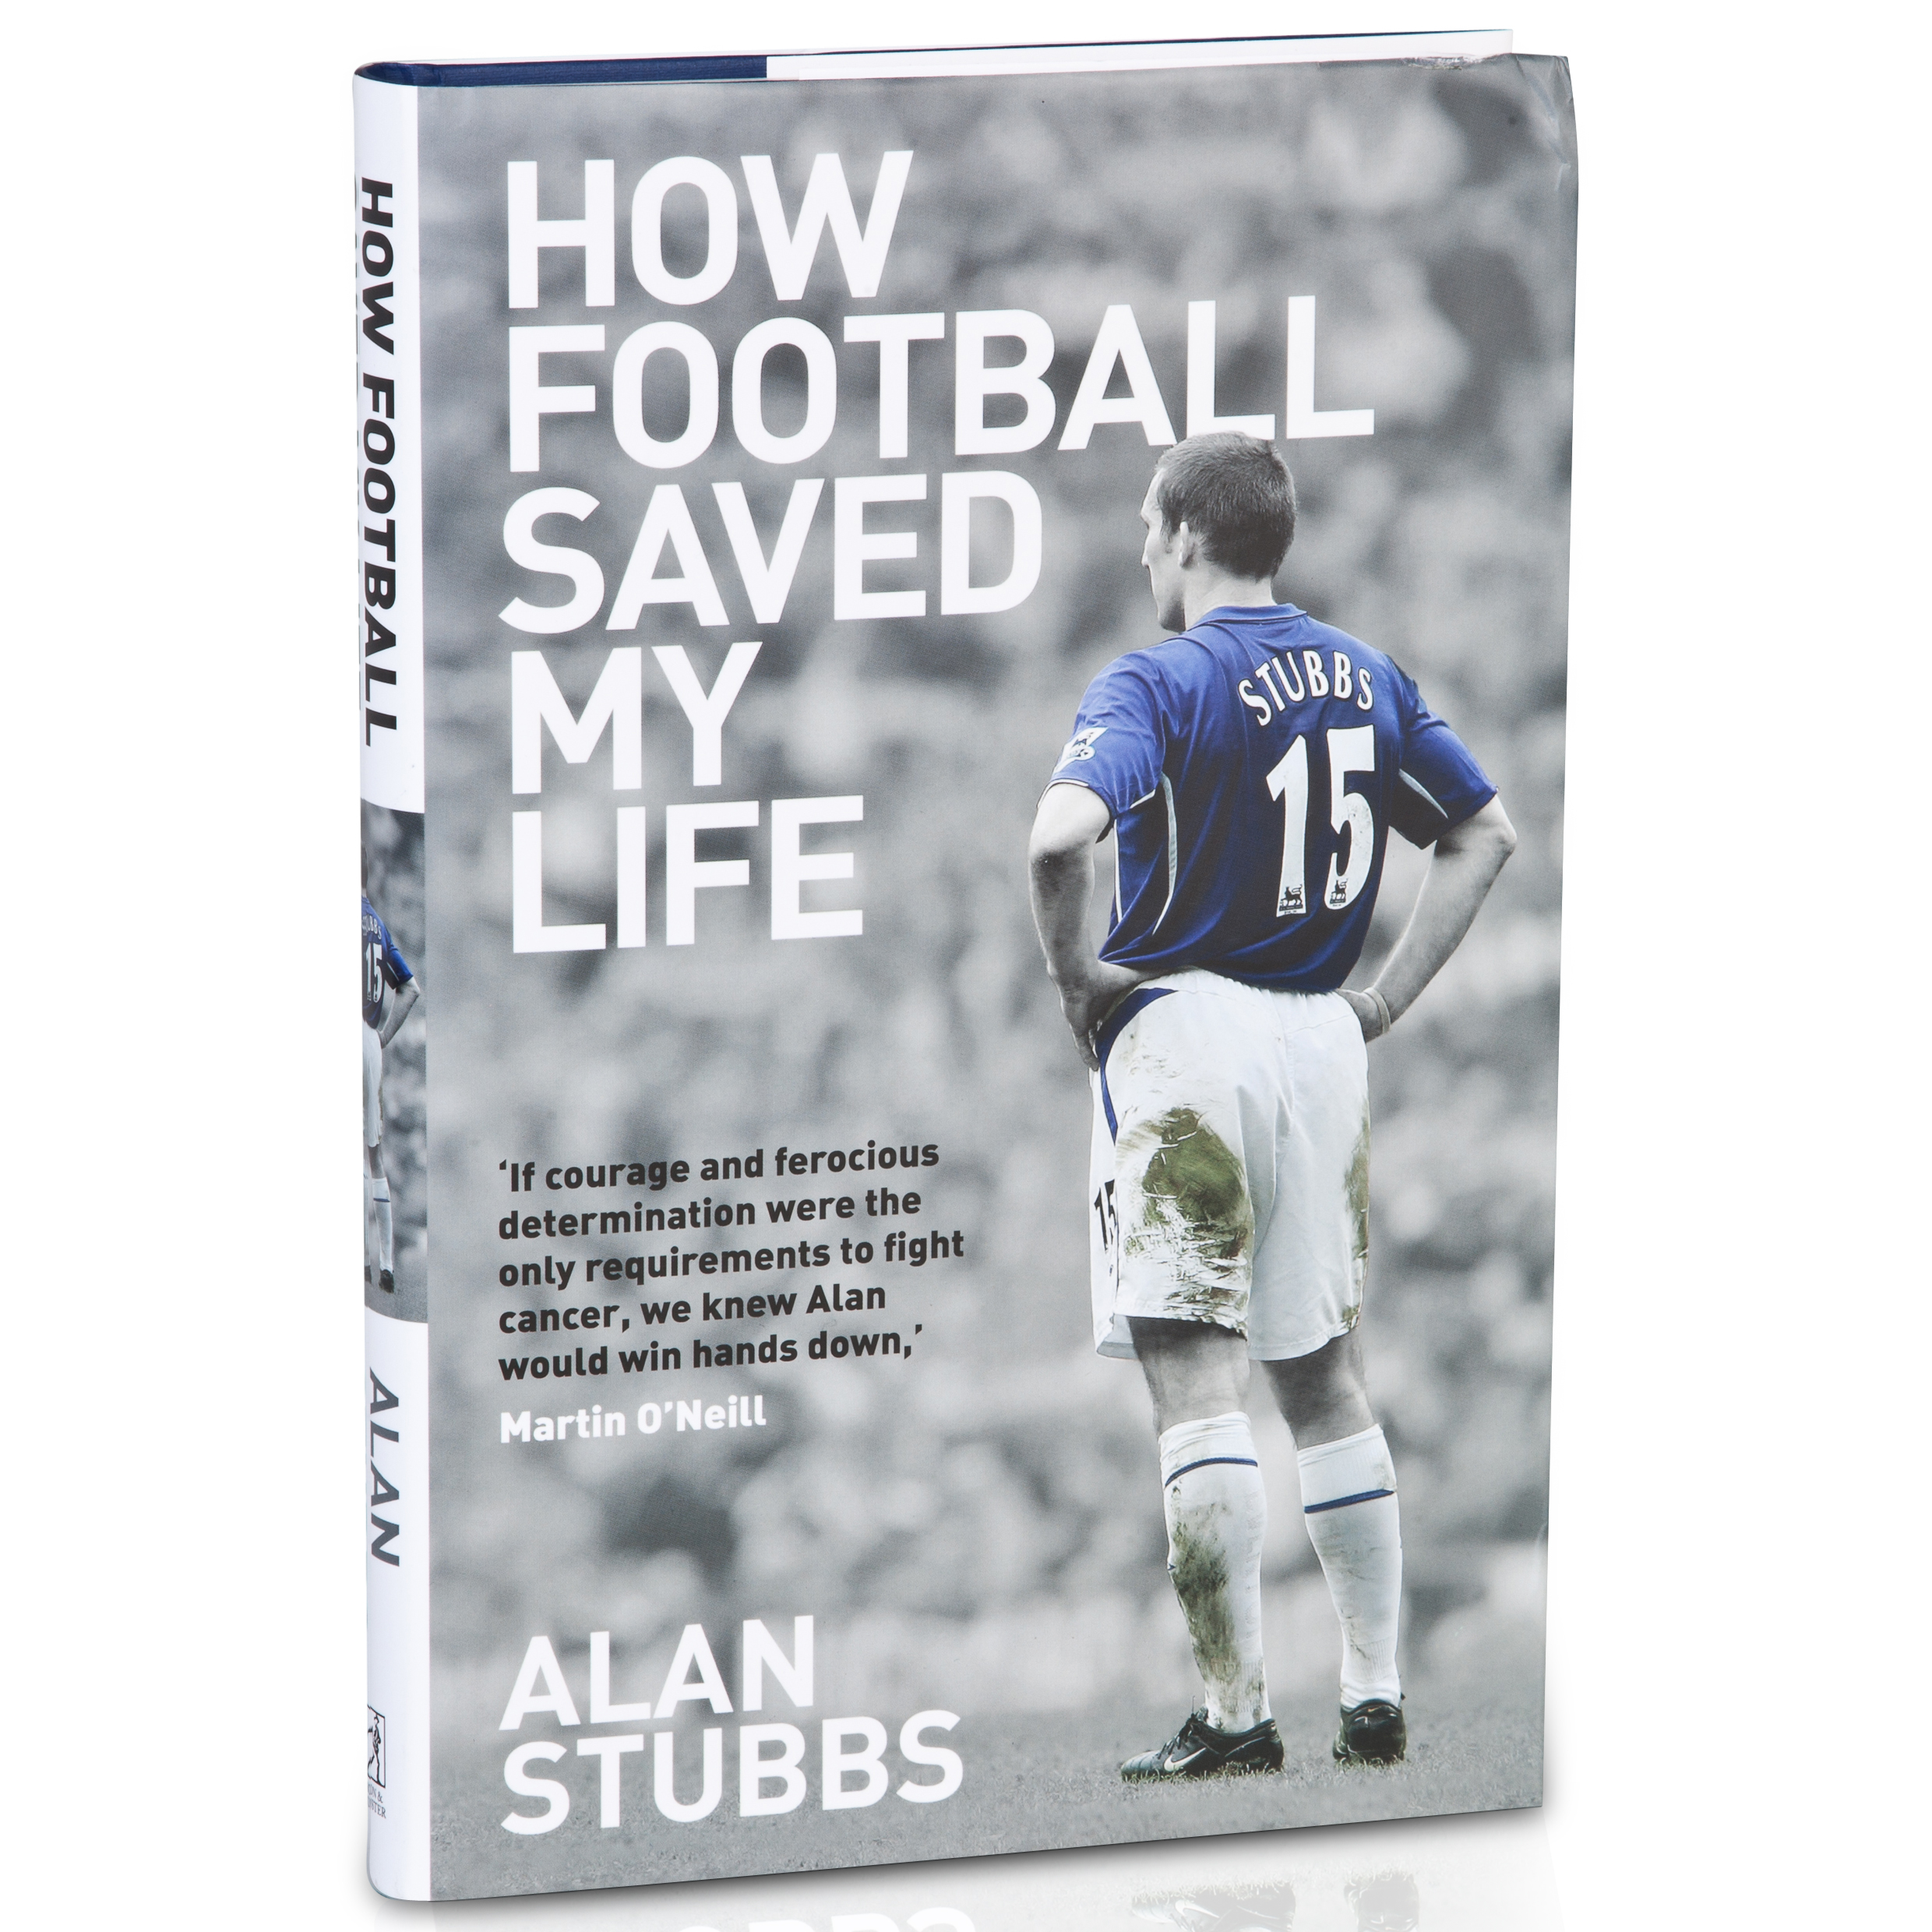 Everton Alan Stubbs - How football Saved My Life